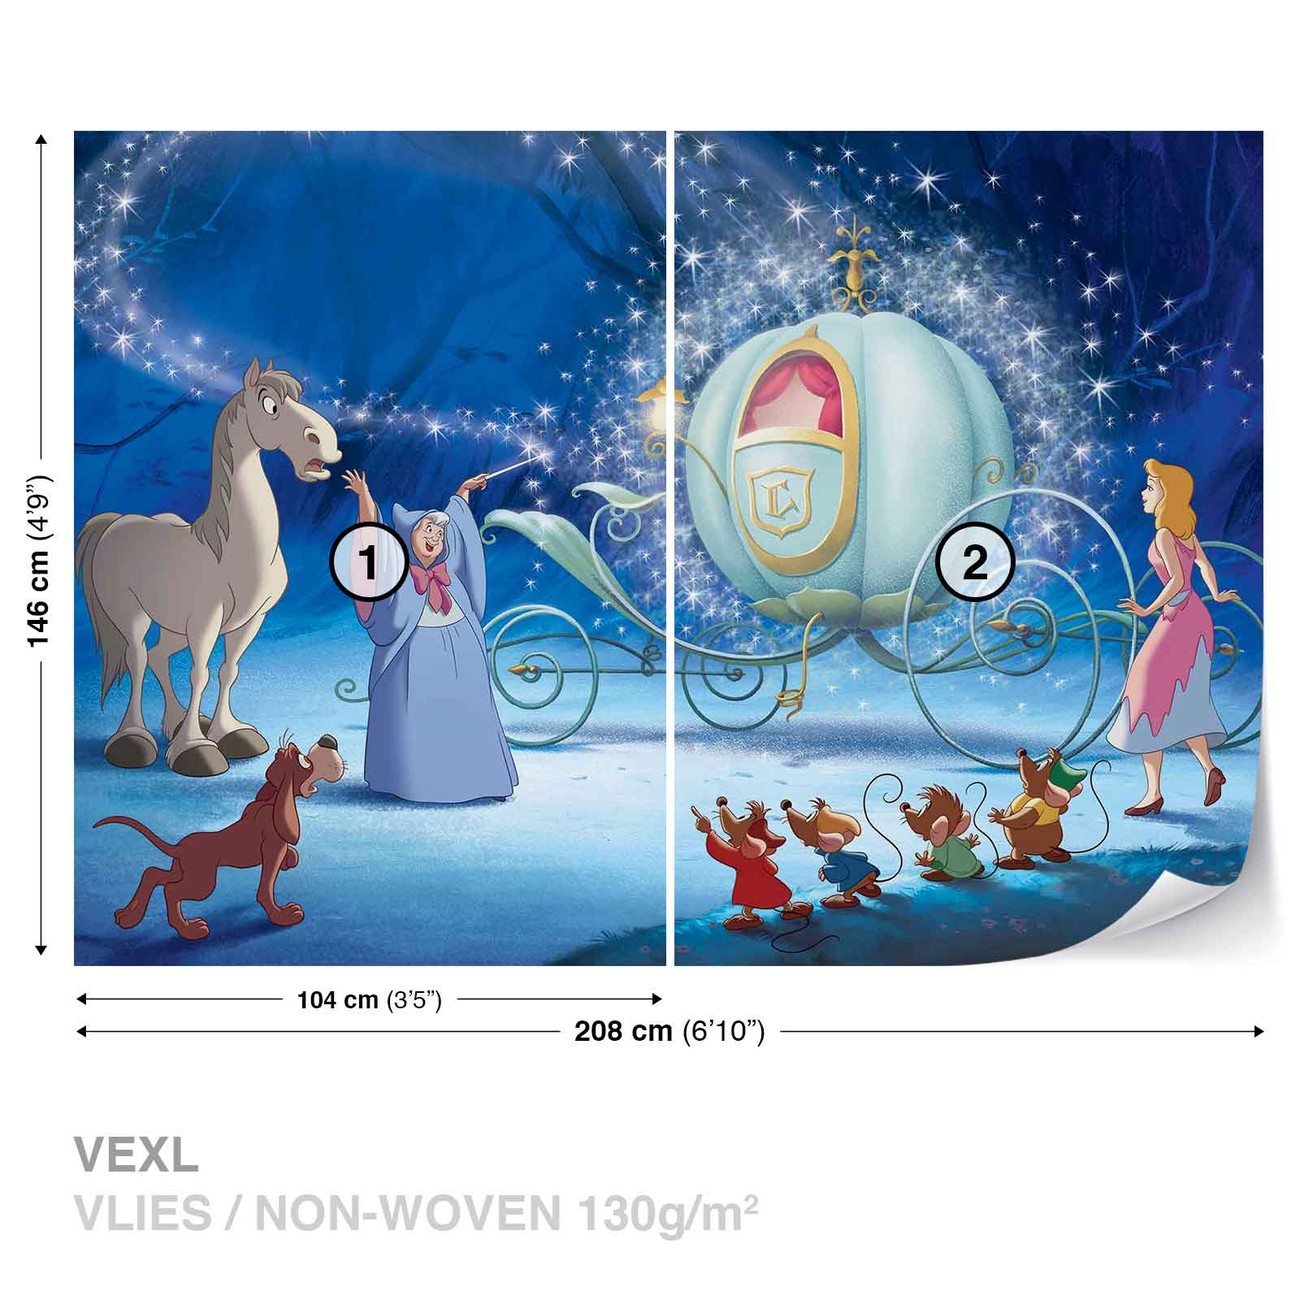 Disney princesses cinderella wall paper mural buy at for Disney princess mini mural